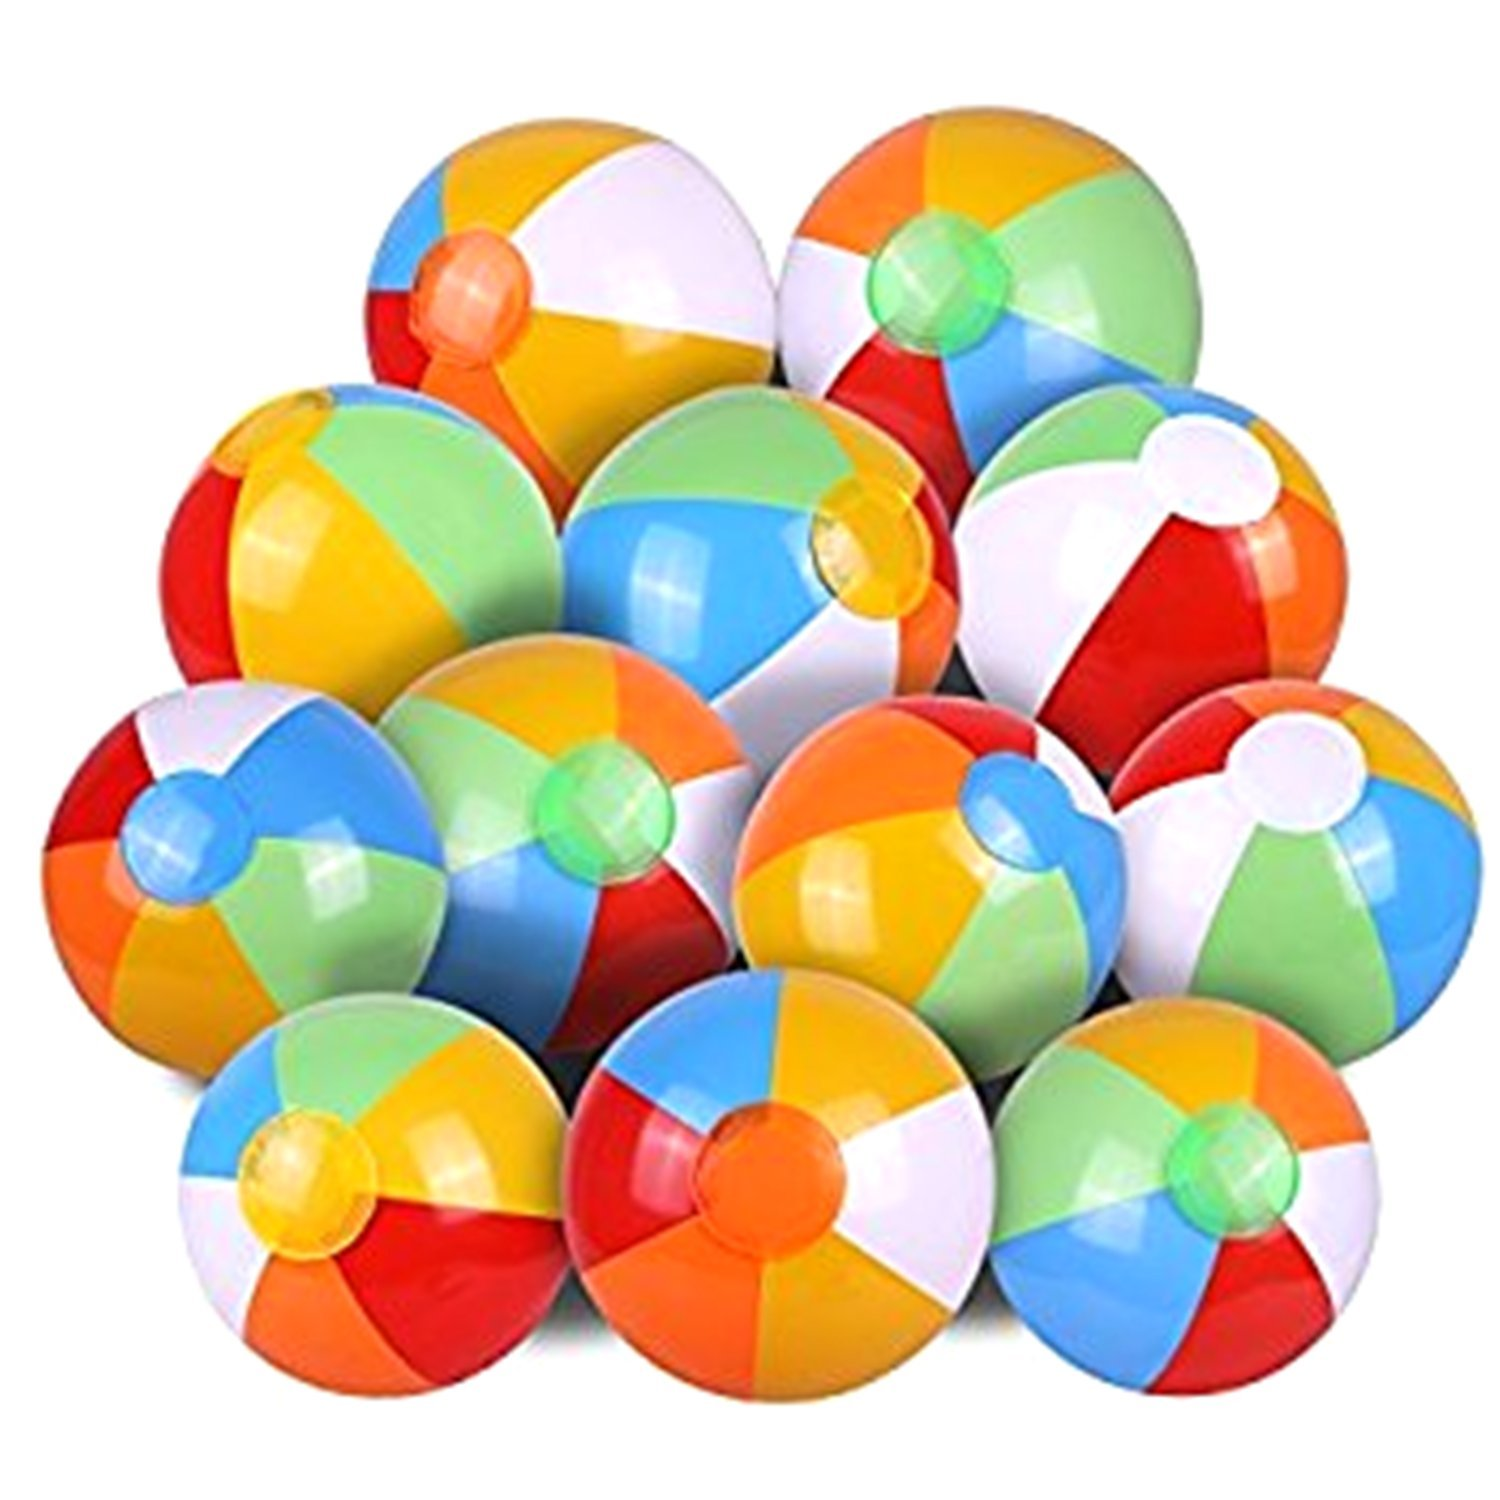 JEWELS FASHION (1DOZEN)12''Inflatable Beach Ball-Ideal for Poolside,Decoration,Concerts,Lakes,Beach,BBQ,Camping,Park,Party-Can Be Inflated Via Mouth,Hand Pump, Pressure Pump, etc